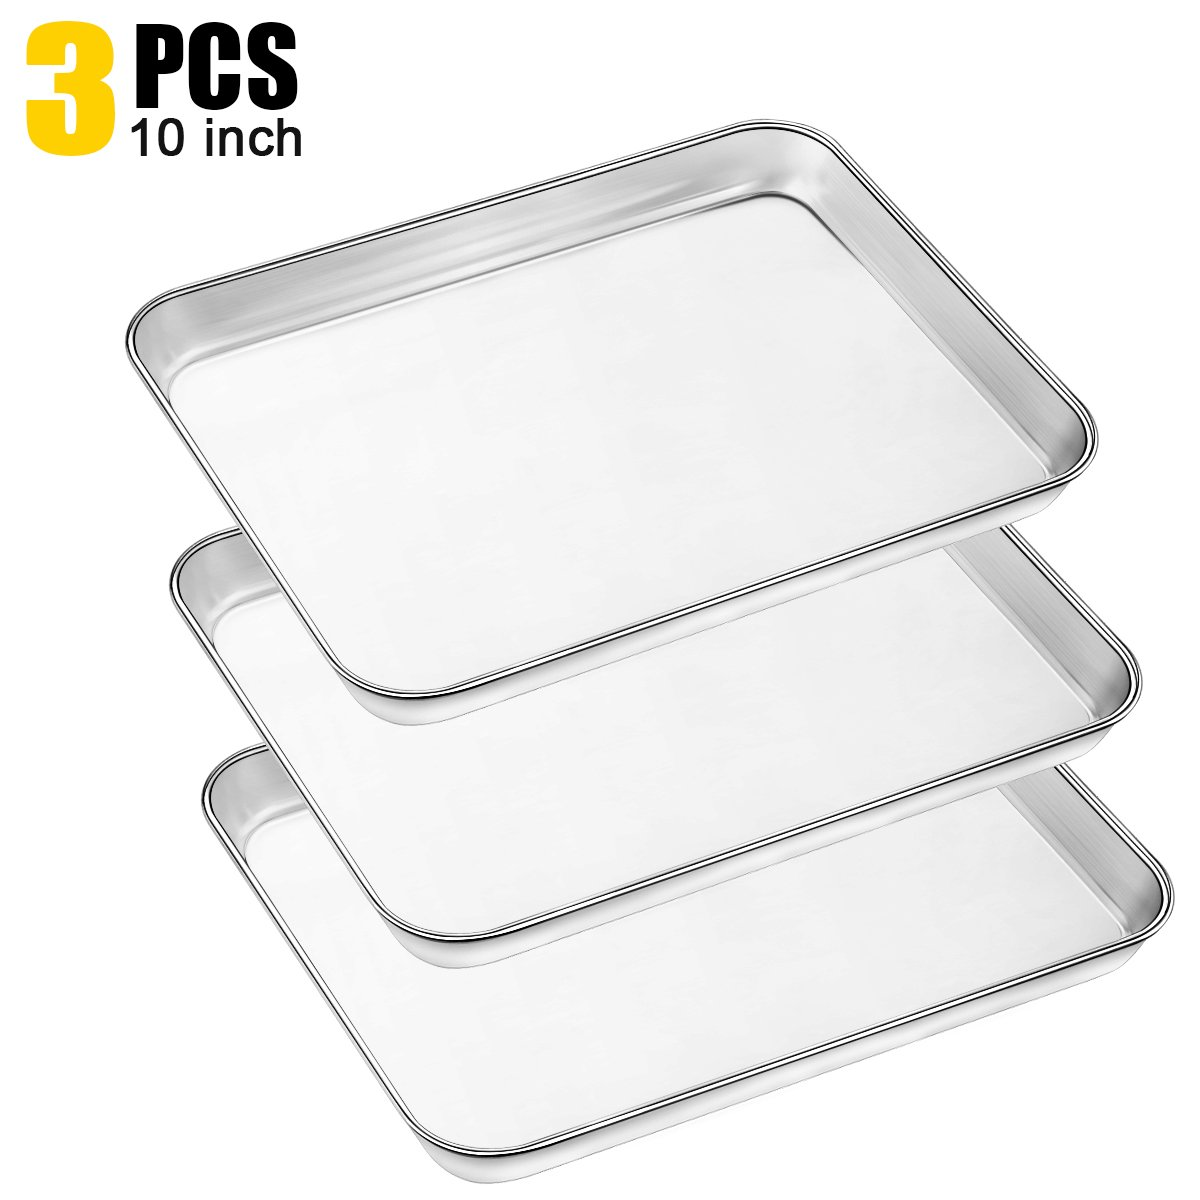 Baking Pans Sheet, 3 Piece Large Cookie Sheets Stainless Steel Baking Pan for Toaster Oven, Umite Chef Non Toxic Tray Pan, Mirror Finish, Easy Clean, Dishwasher Safe, 10 x 8 x 1 inch